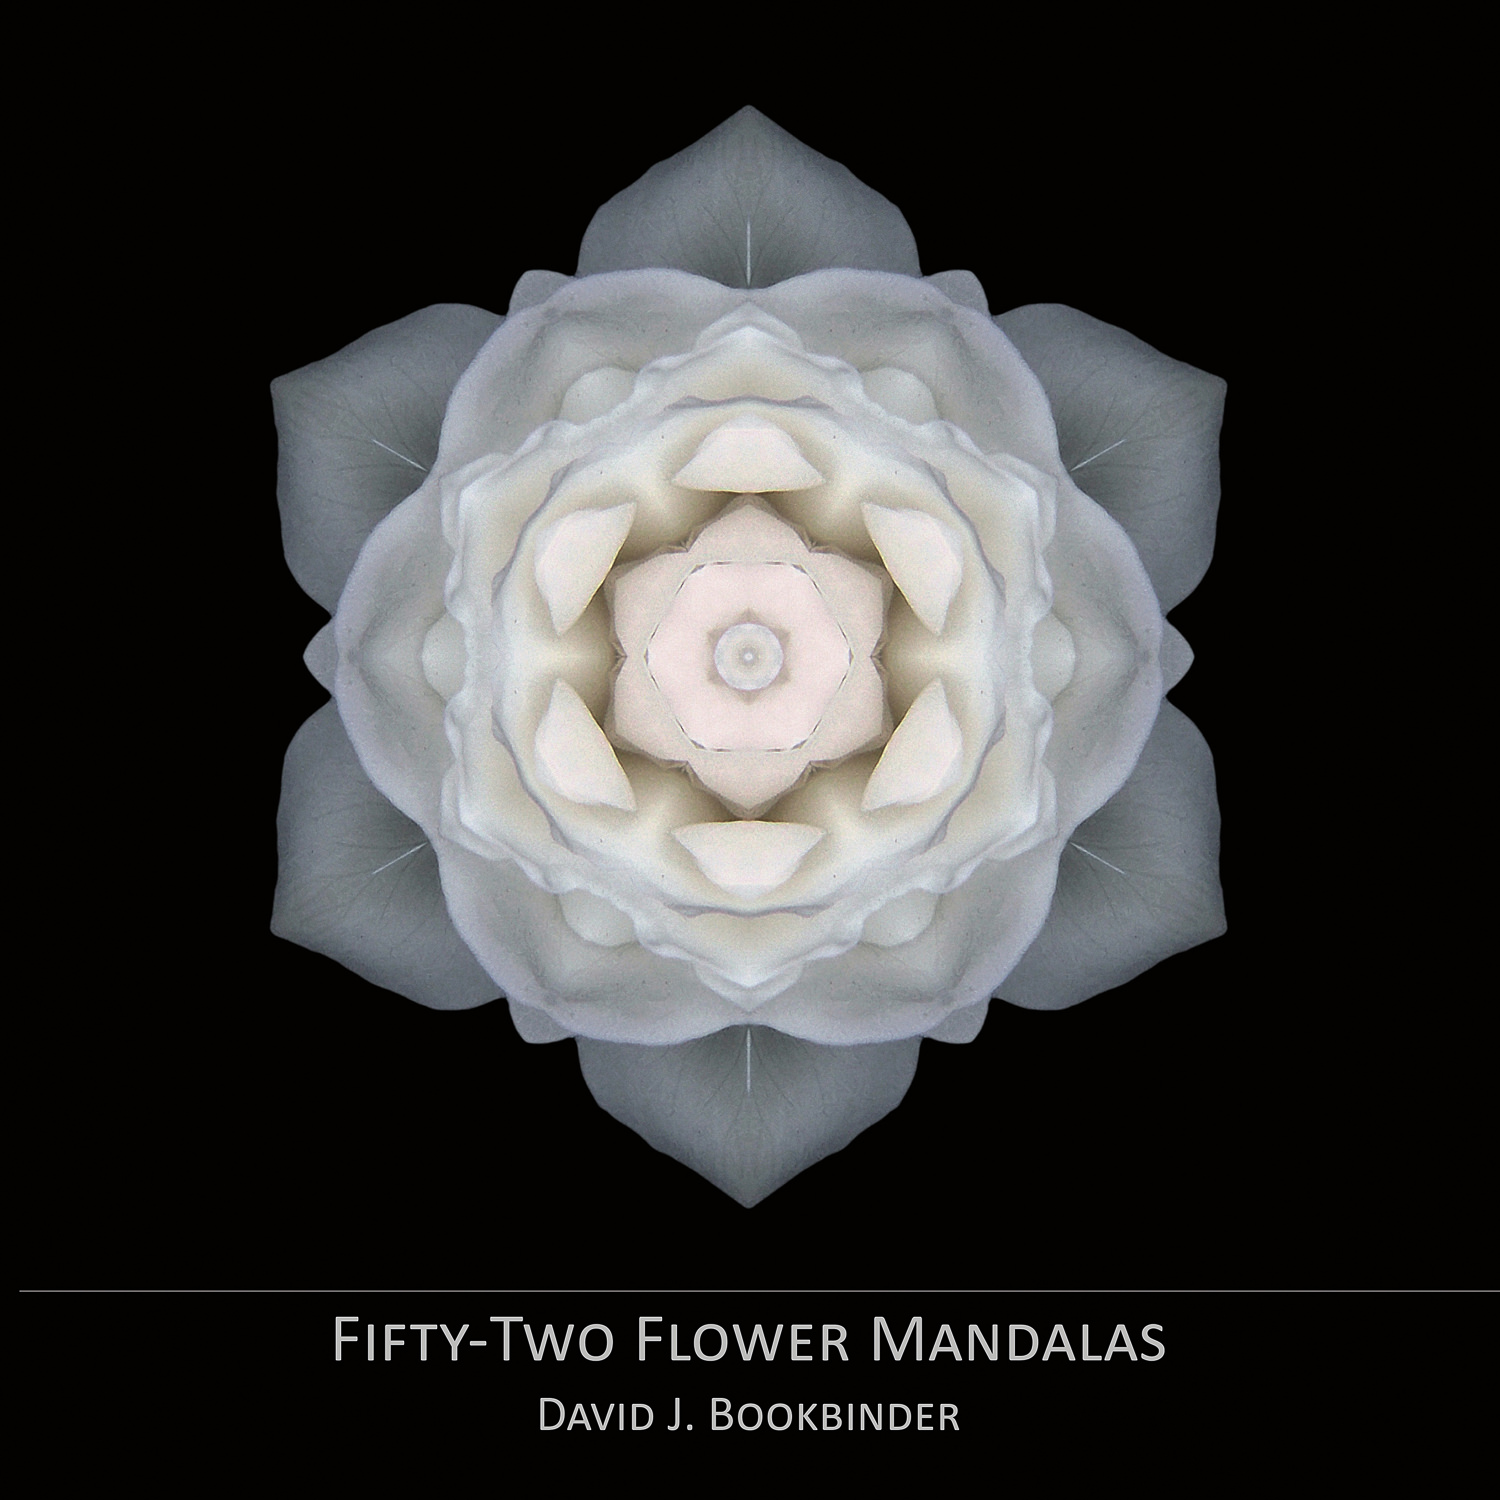 Fifty-Two Flower Mandalas - cover 12x12.indd